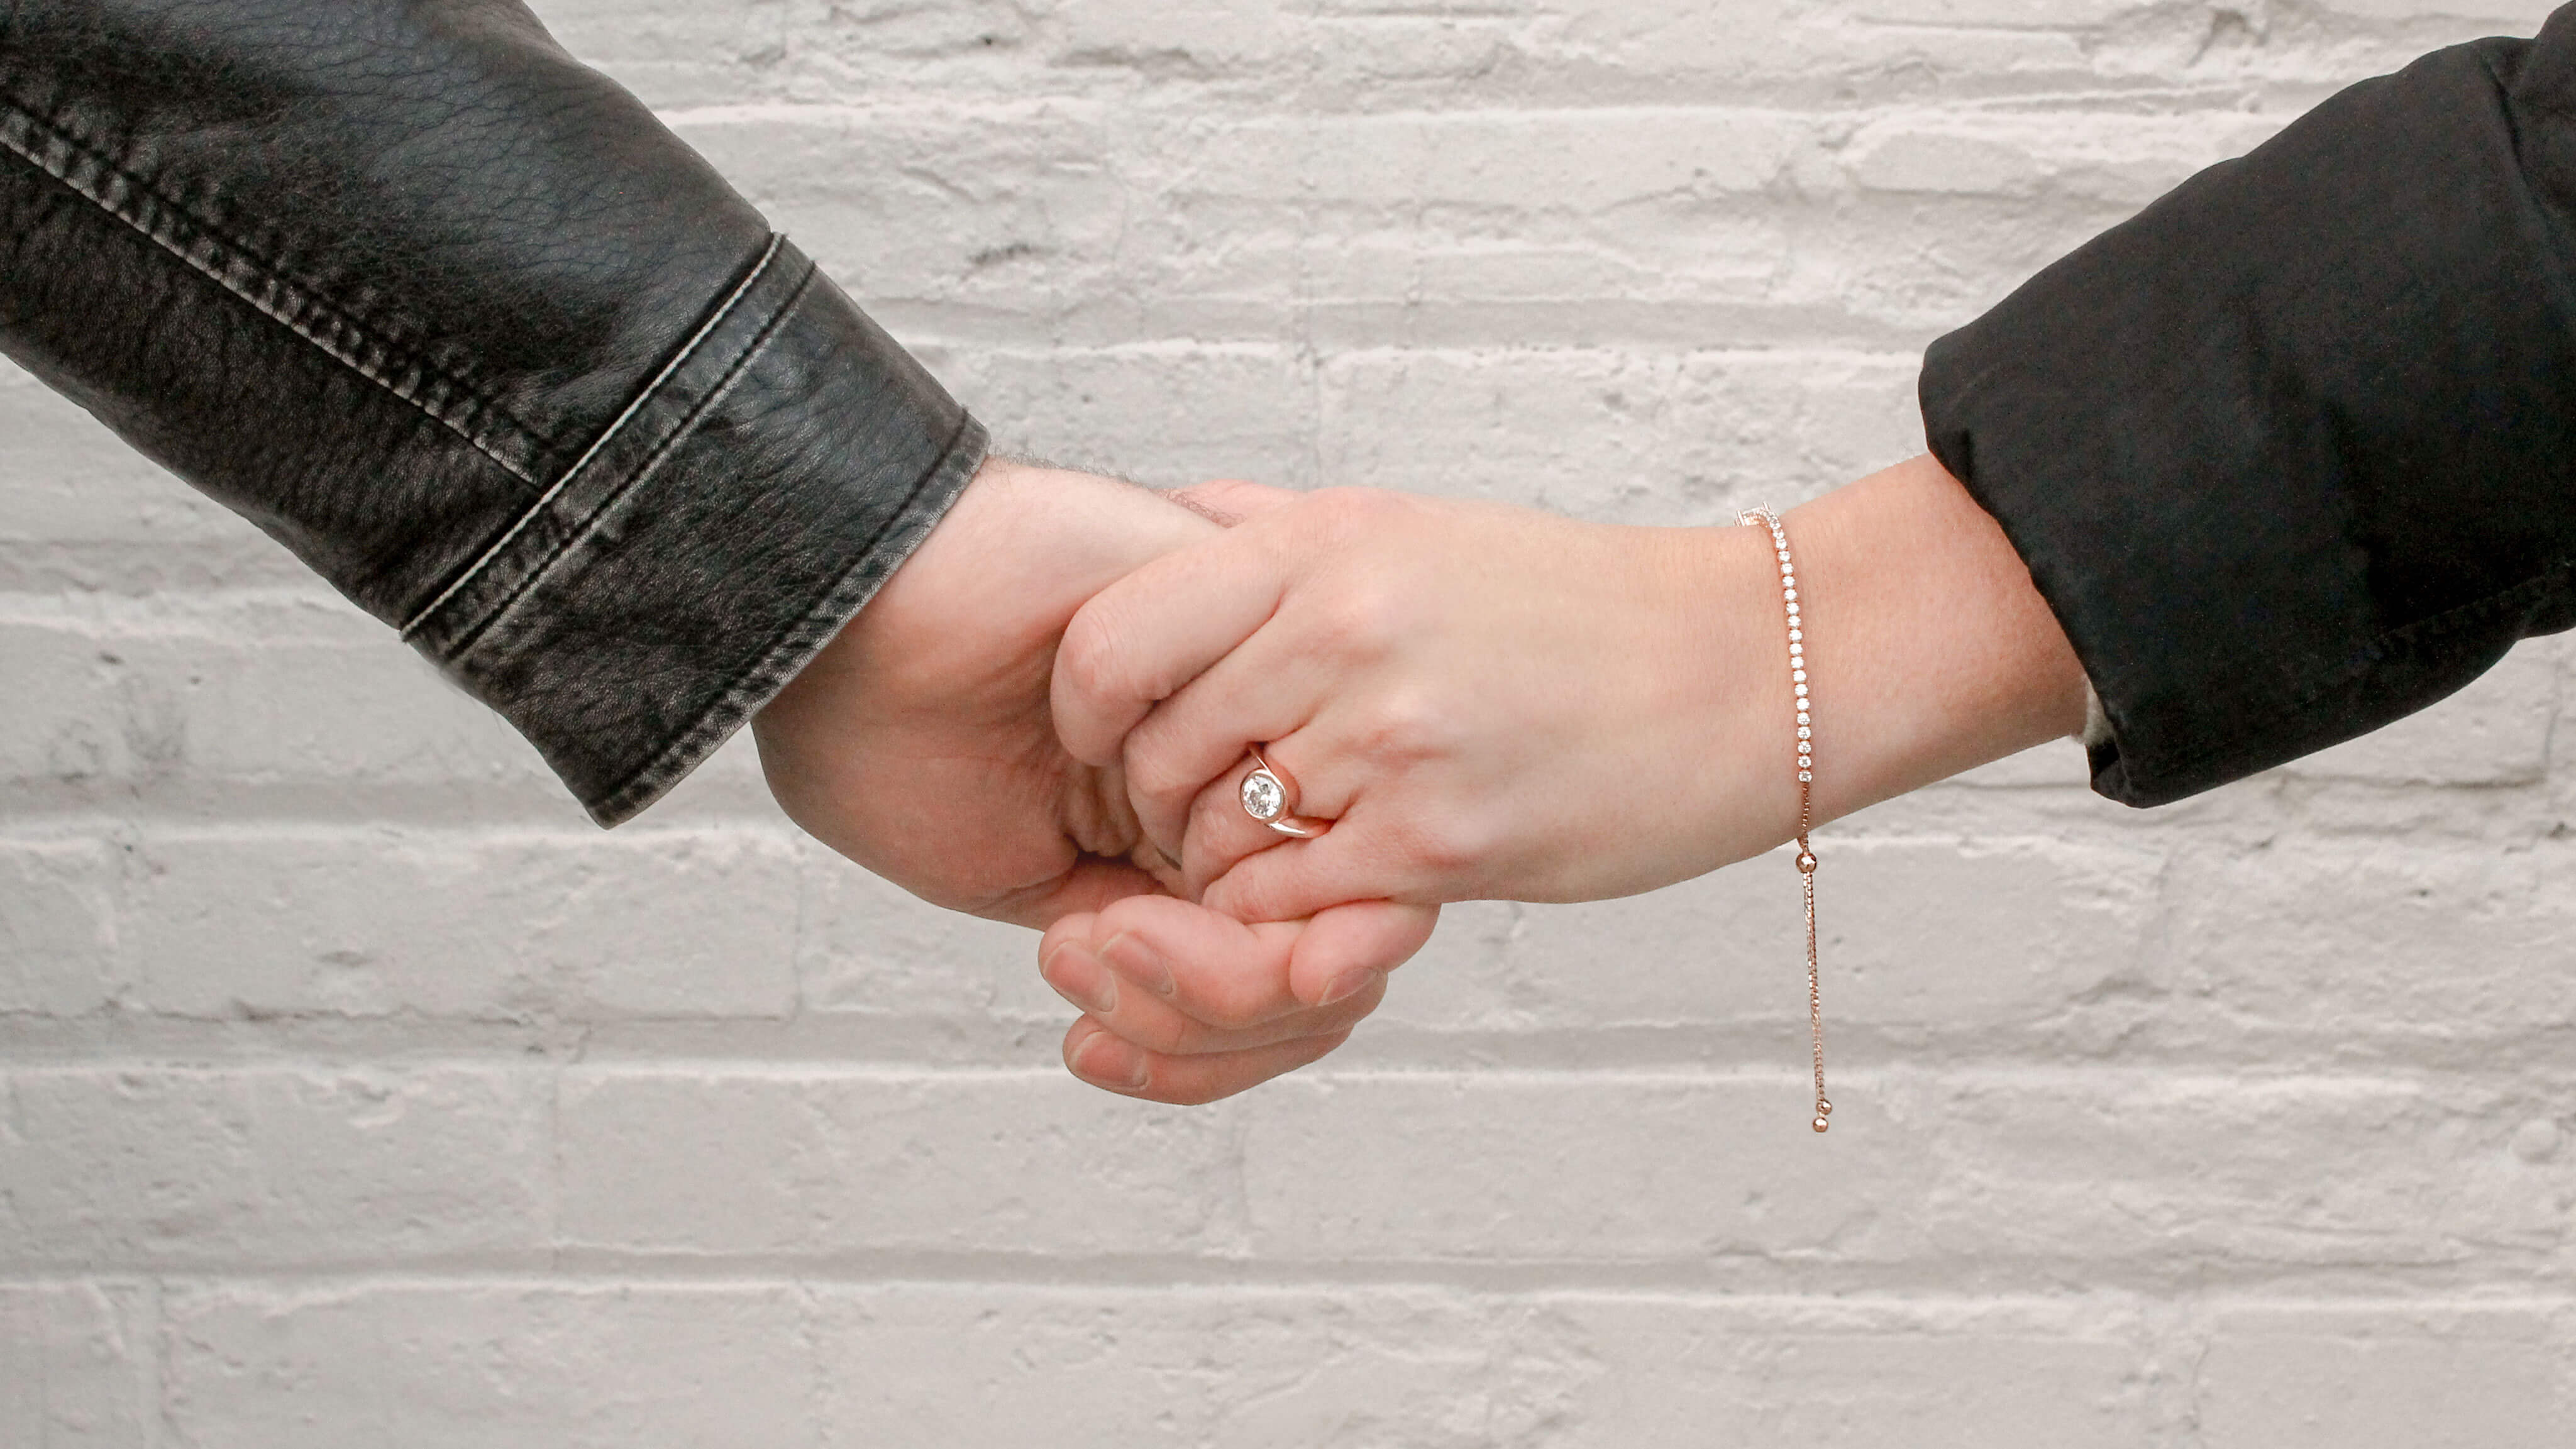 Bound to You Radiant Cut Bracelet and Round cut engagement ring in rose gold, featured on a couple holding hands.